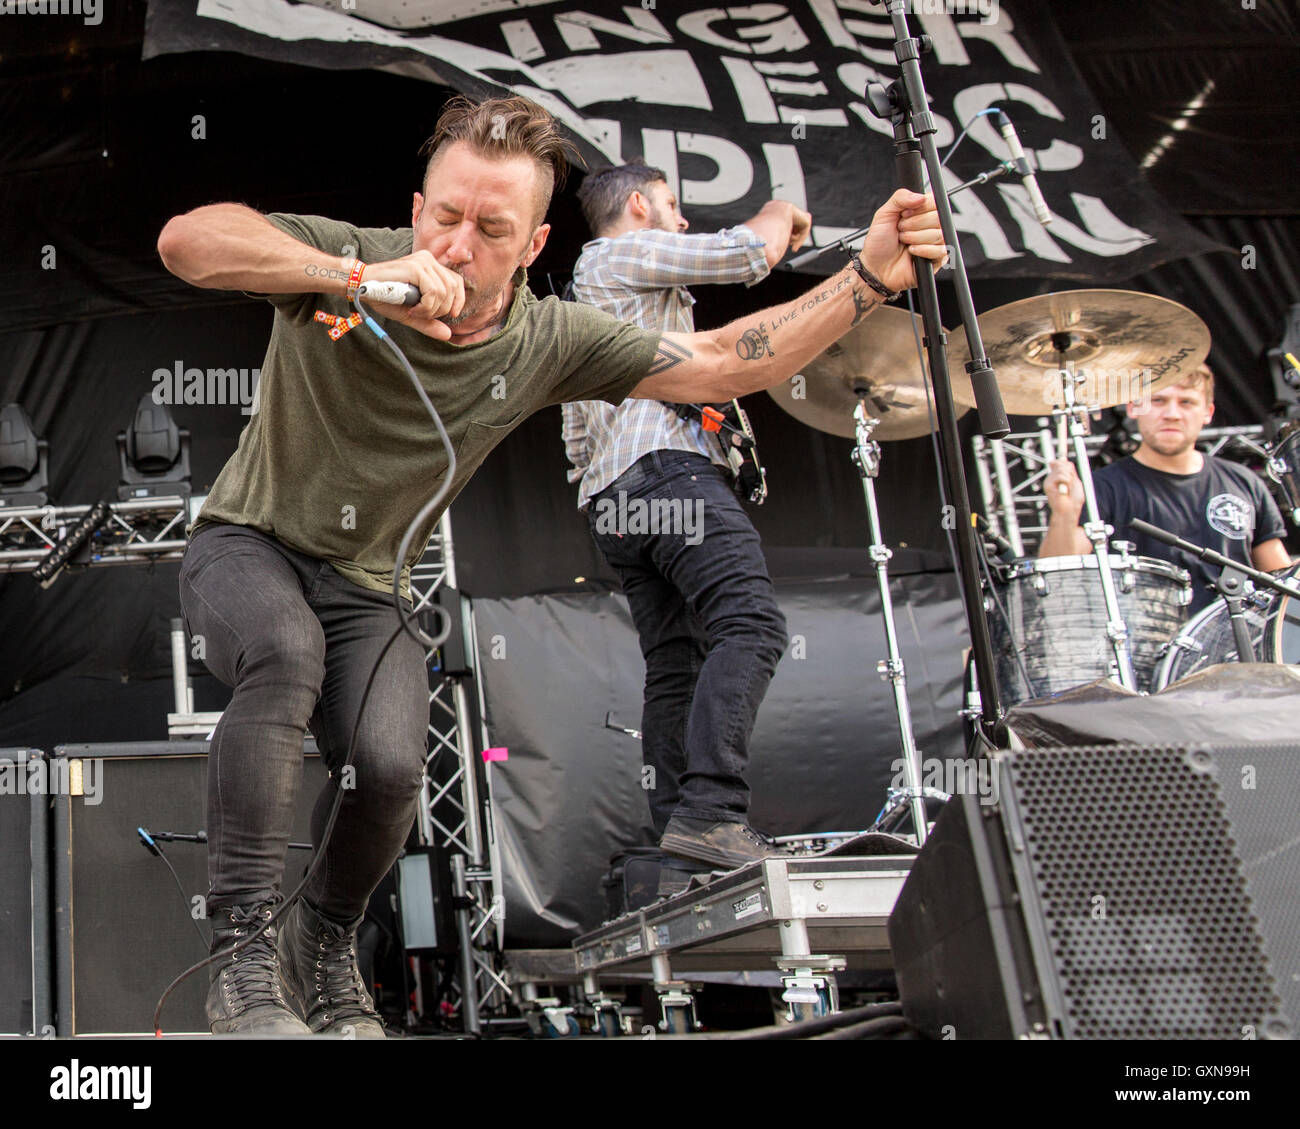 Chicago, Illinois, USA. 16th Sep, 2016. GREG PUCIATO, BEN WEINMAN and BILLY RYMER of Dillinger Escape Plan perform - Stock Image